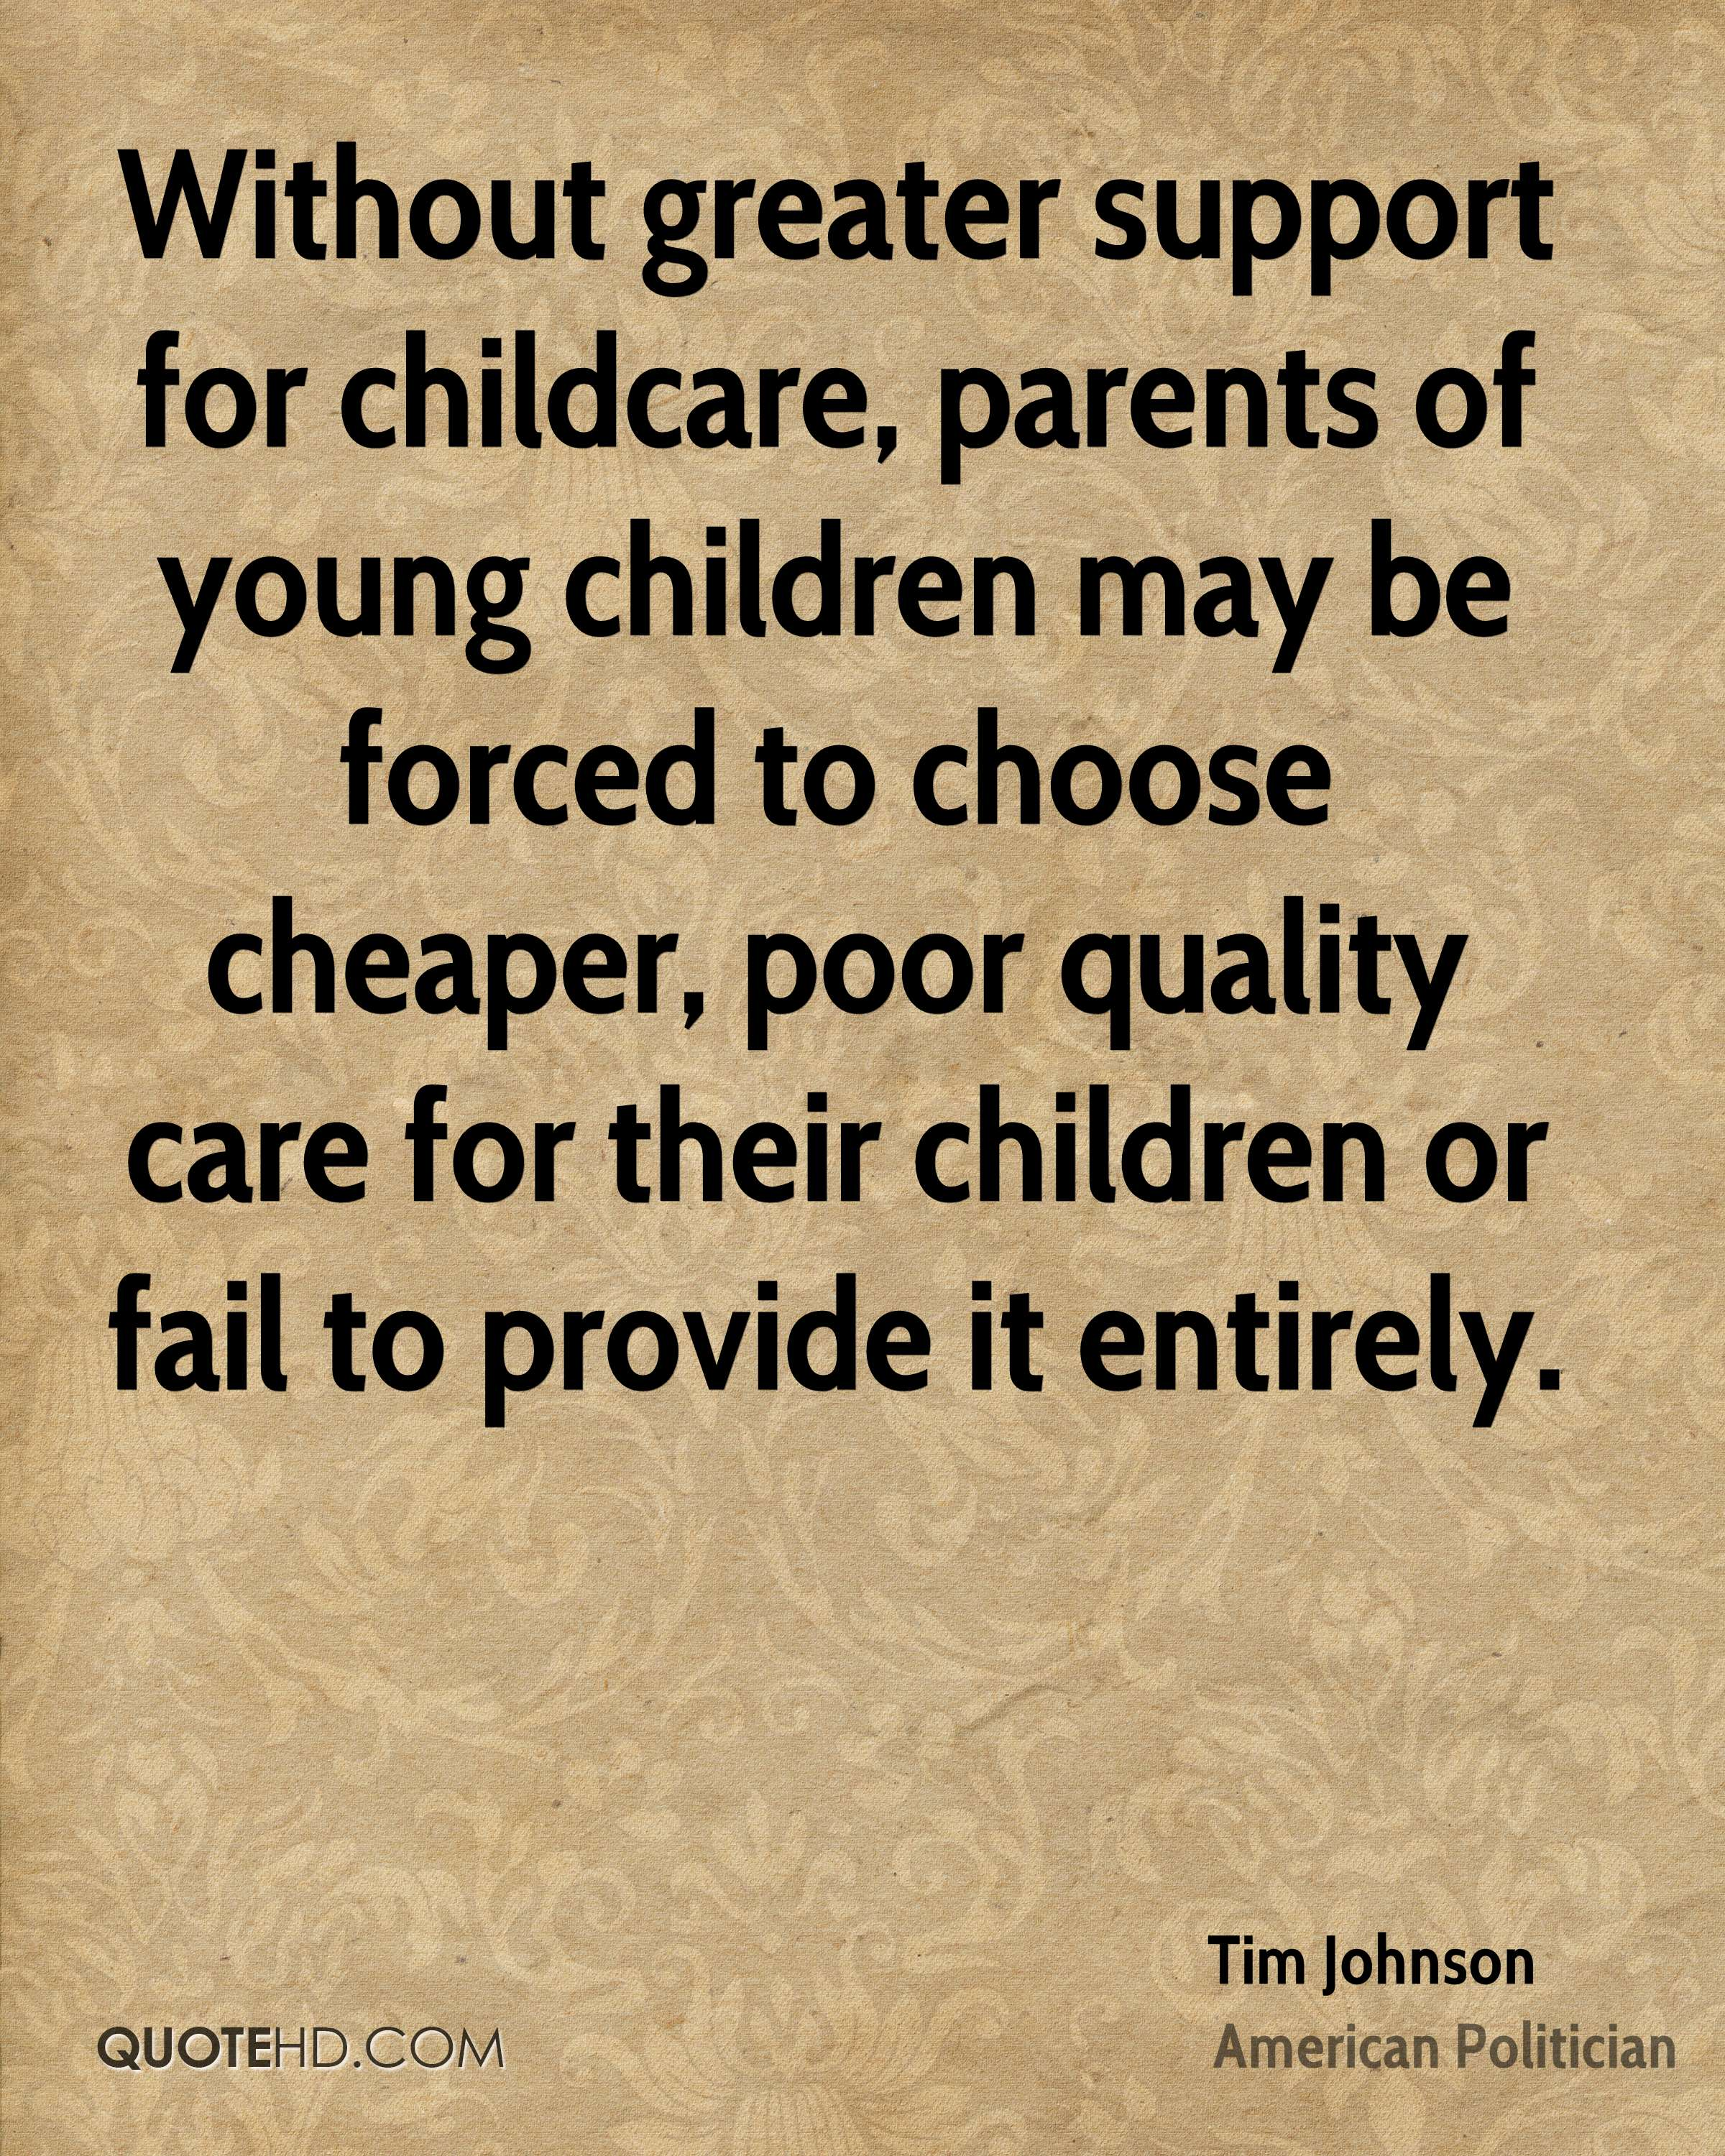 Childcare Quotes Beauteous Tim Johnson Quotes  Quotehd